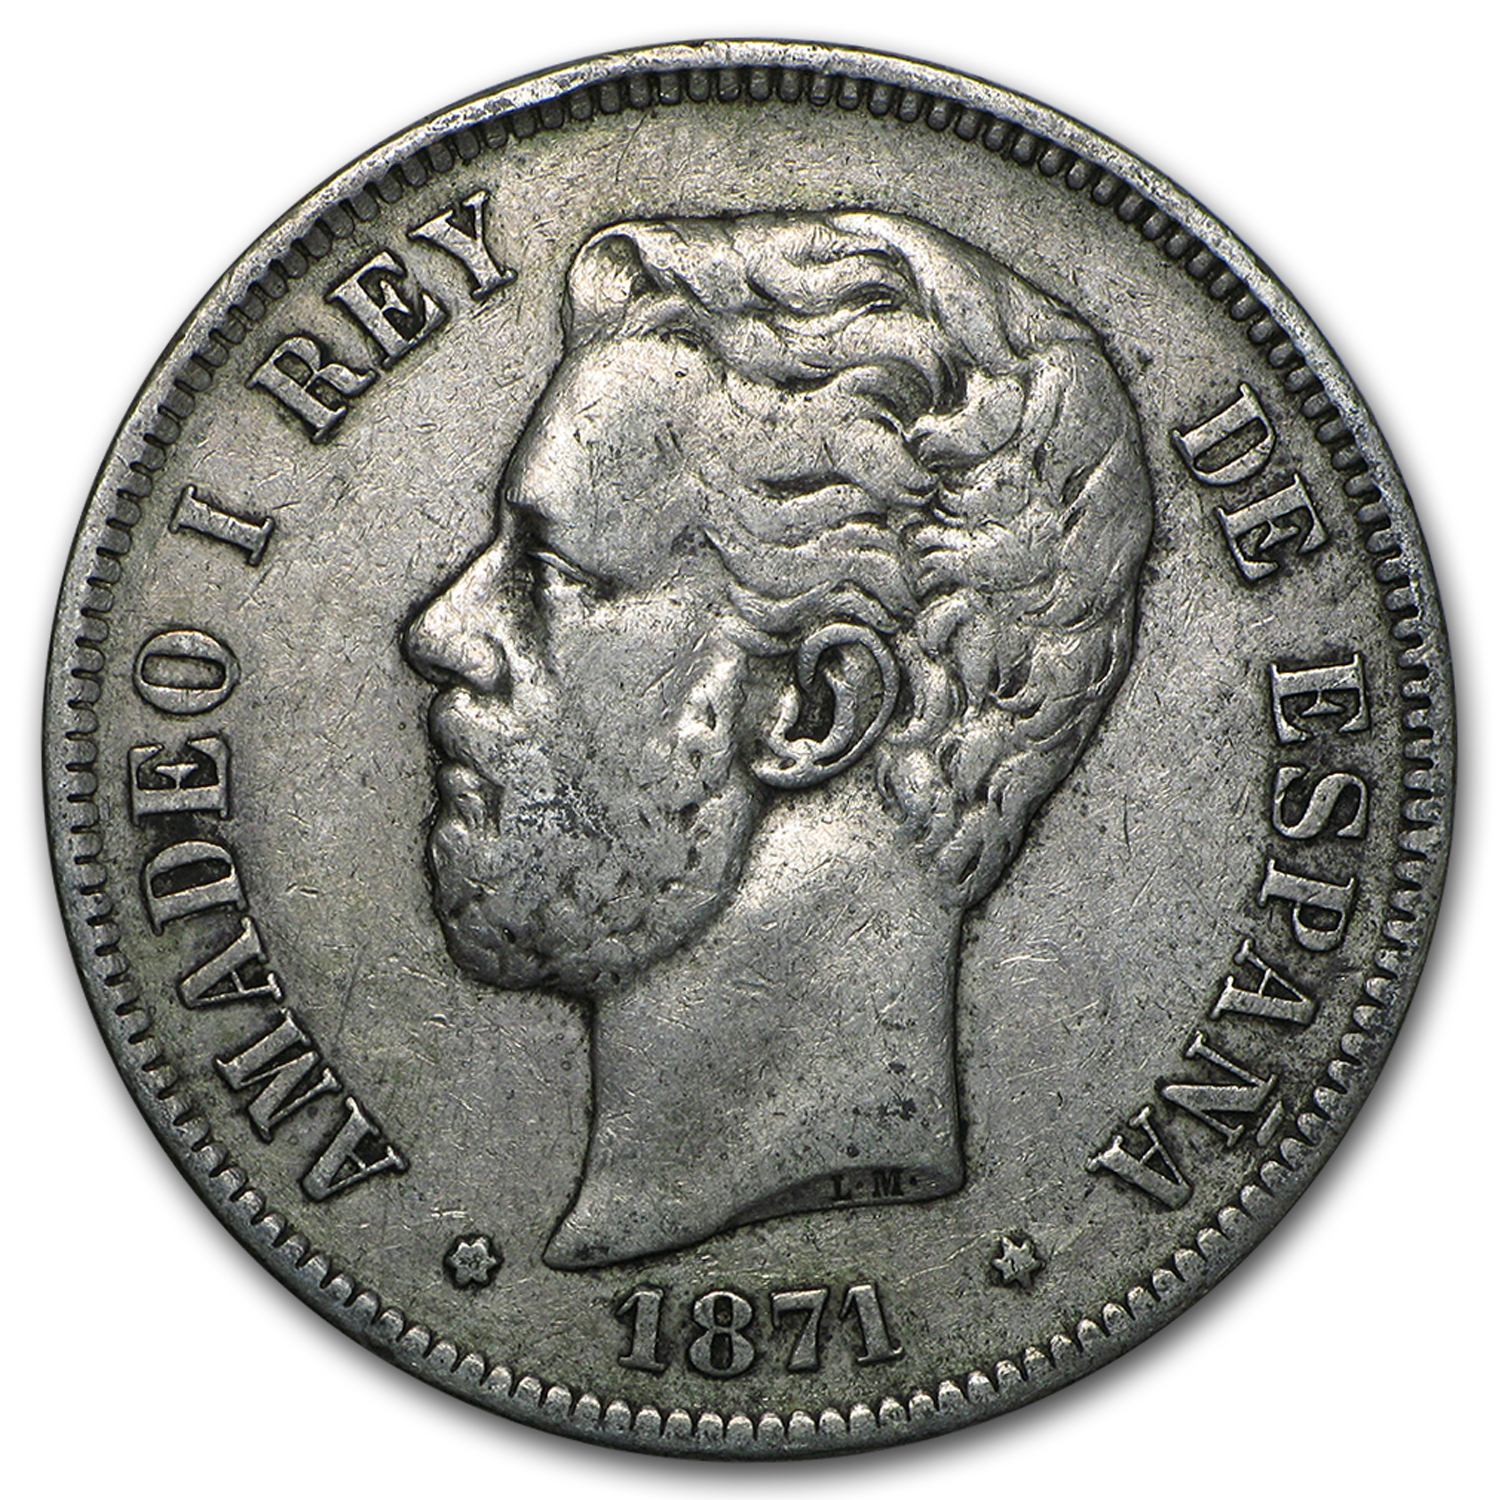 1871-1875 Spain Silver 5 Pesetas Amadeo I Average Circulated